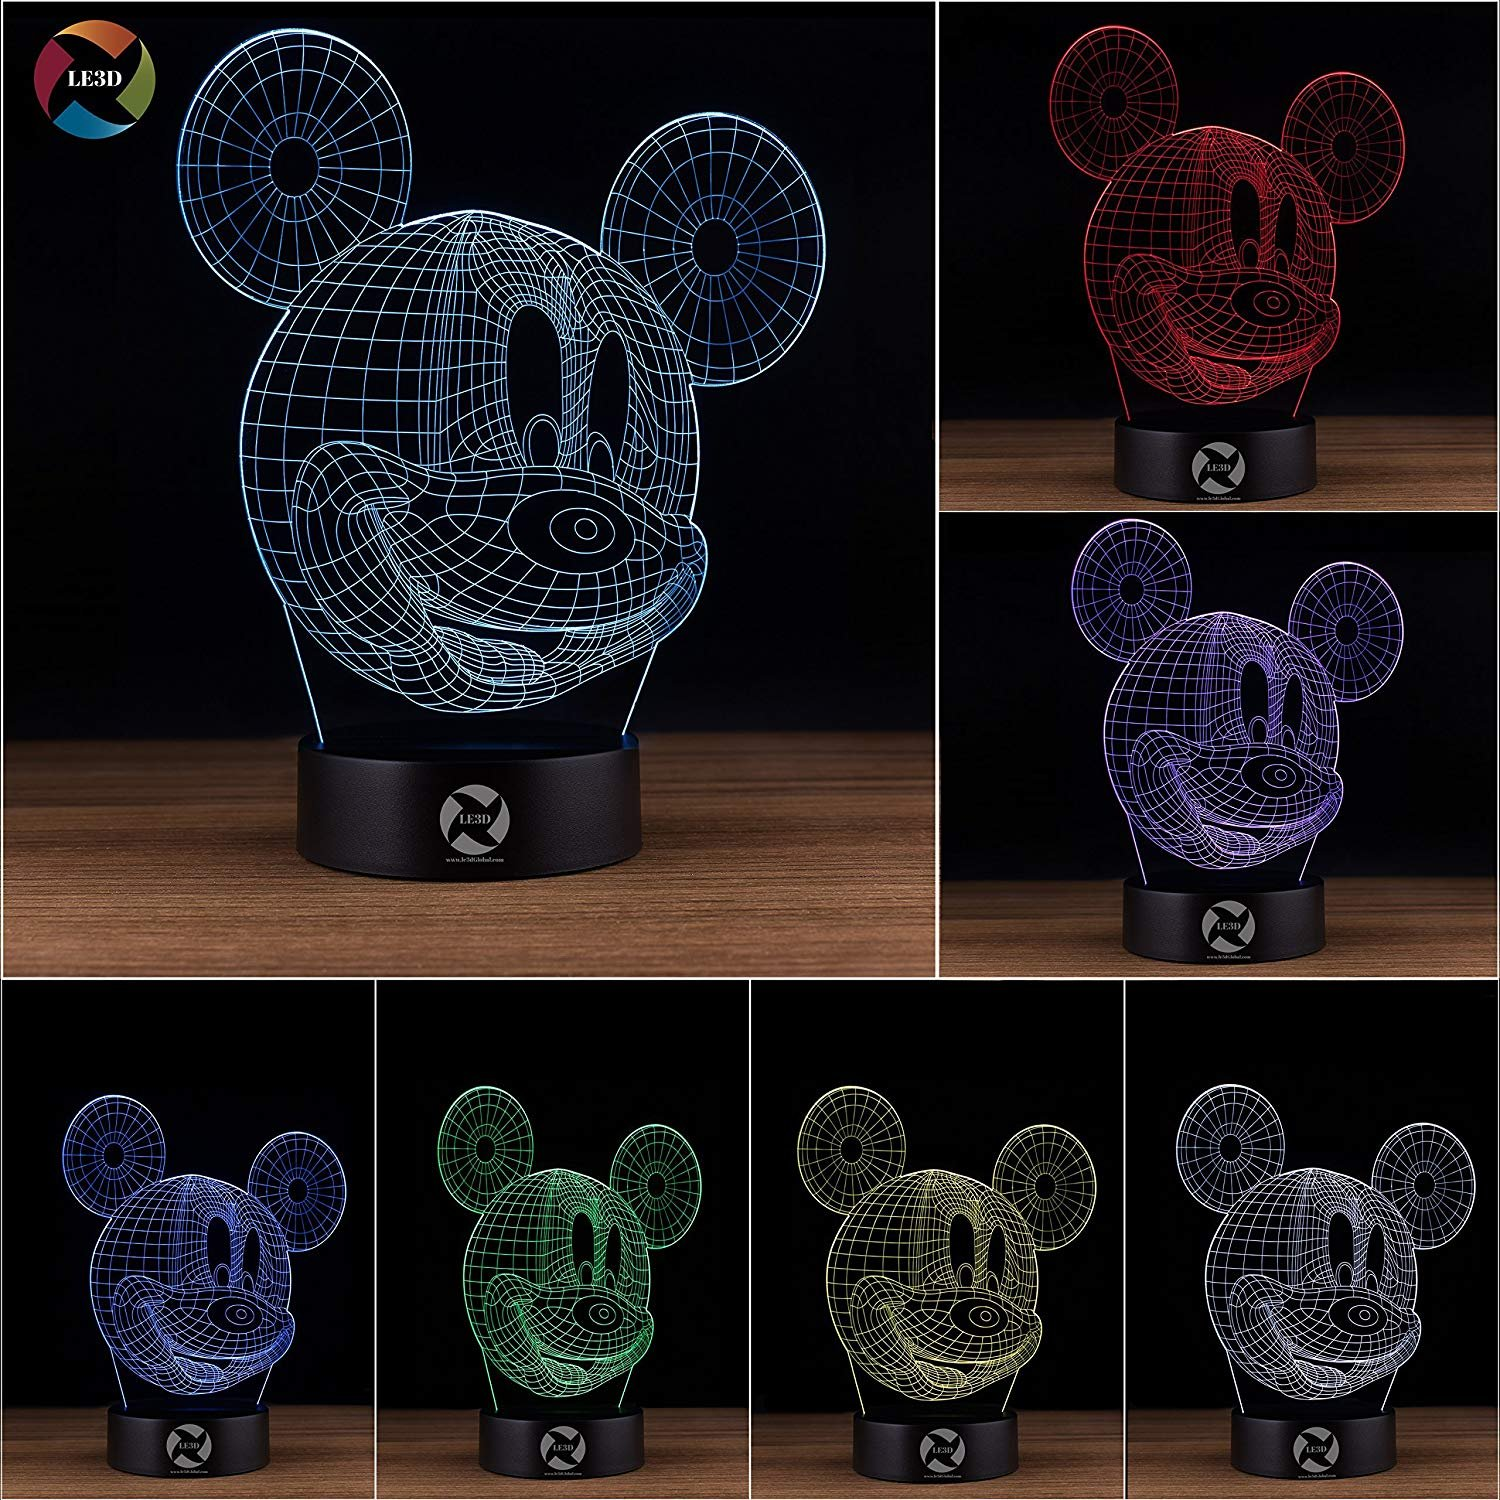 3D Optical Illusion Night Light - 7 LED Color Changing Lamp - Cool Soft Light Safe For Kids - Solution For Nightmares - Disney Mickey Mouse